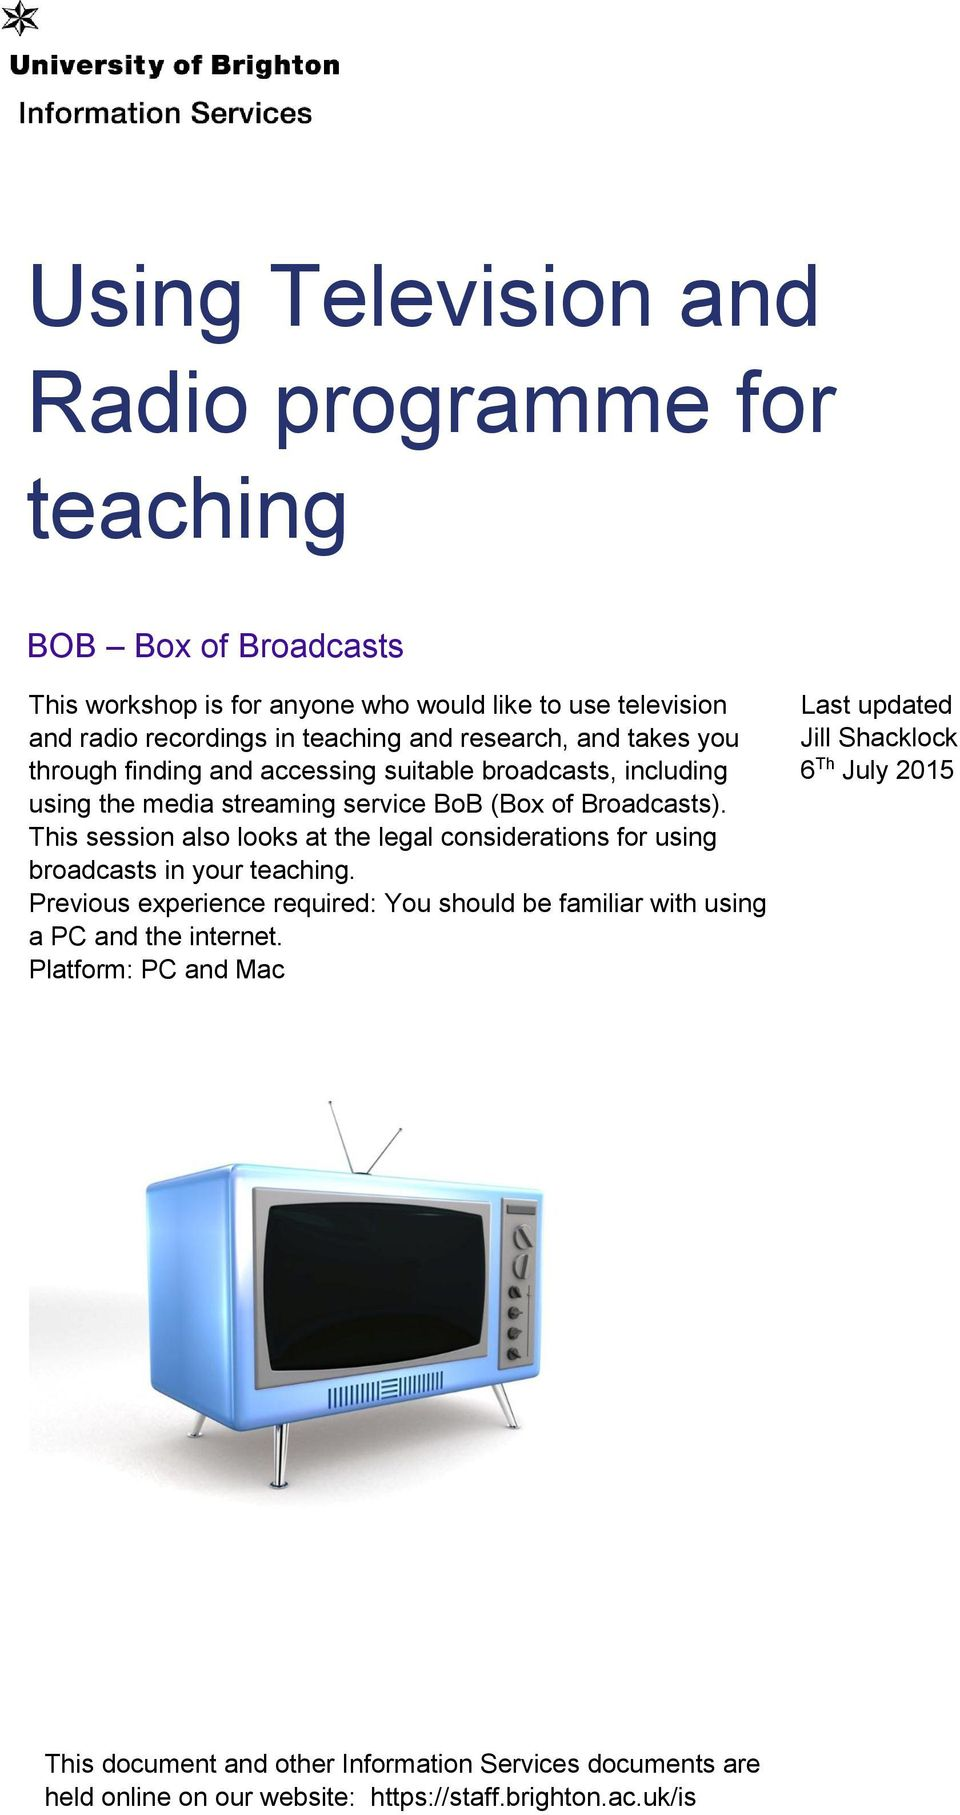 This session also looks at the legal considerations for using broadcasts in your teaching.